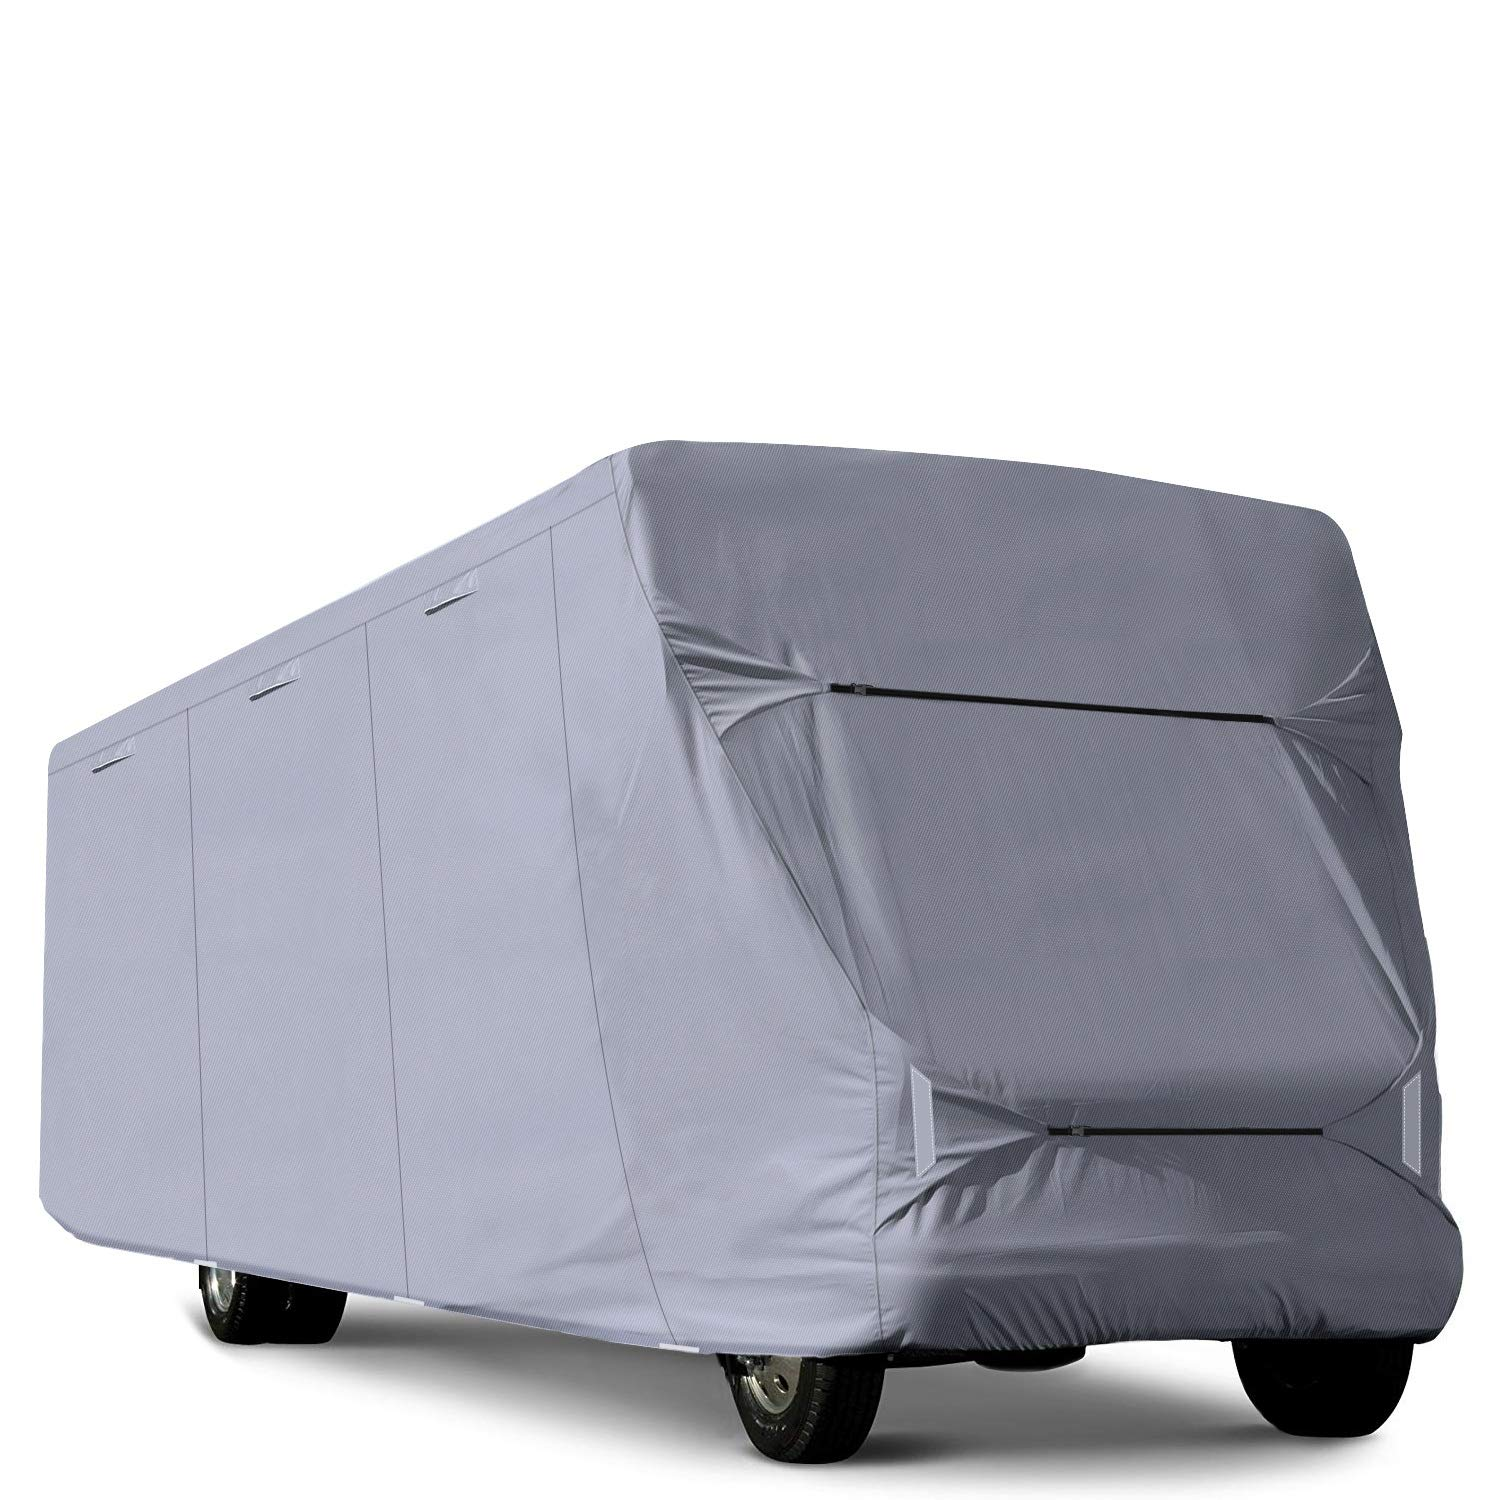 RVMasking Class C RV Cover, Fits 29'-32' Trailer Camper with Adhesive Repair Patch by RVMasking